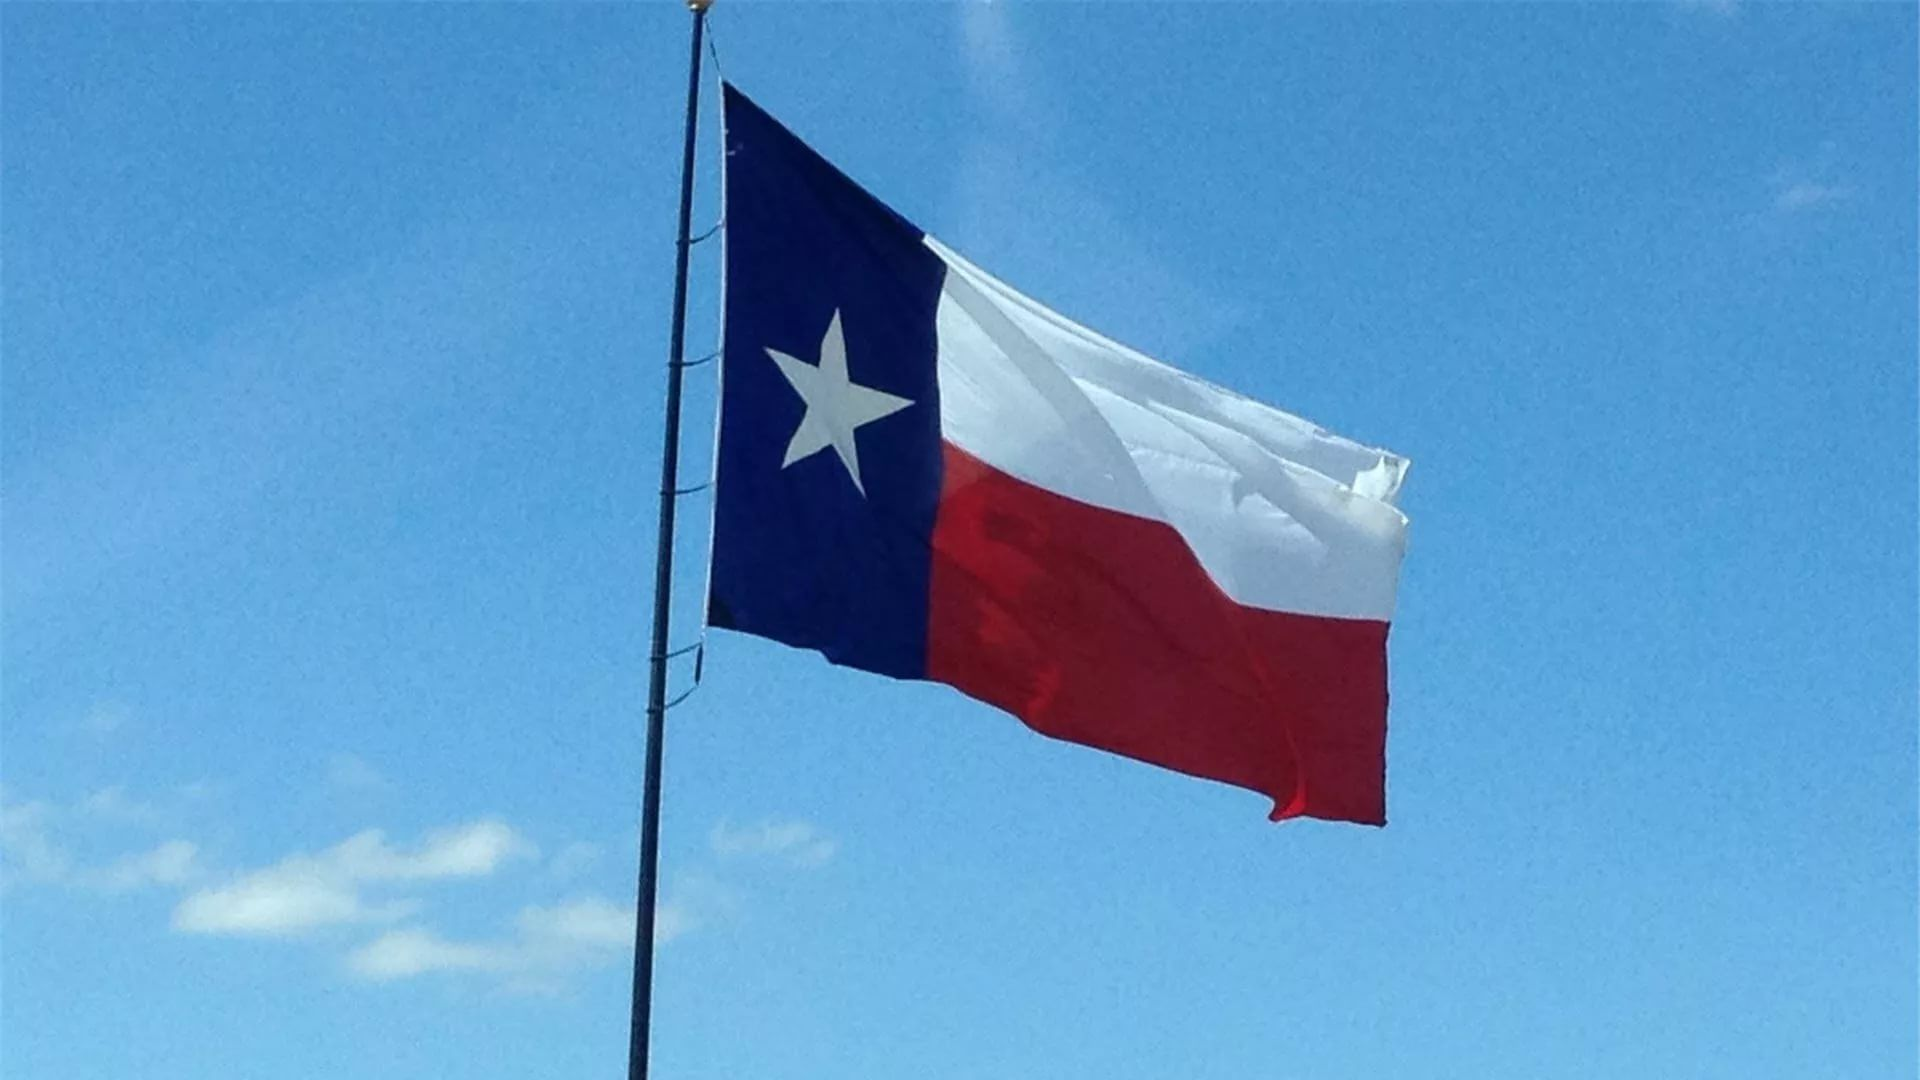 Texas Flag computer wallpaper